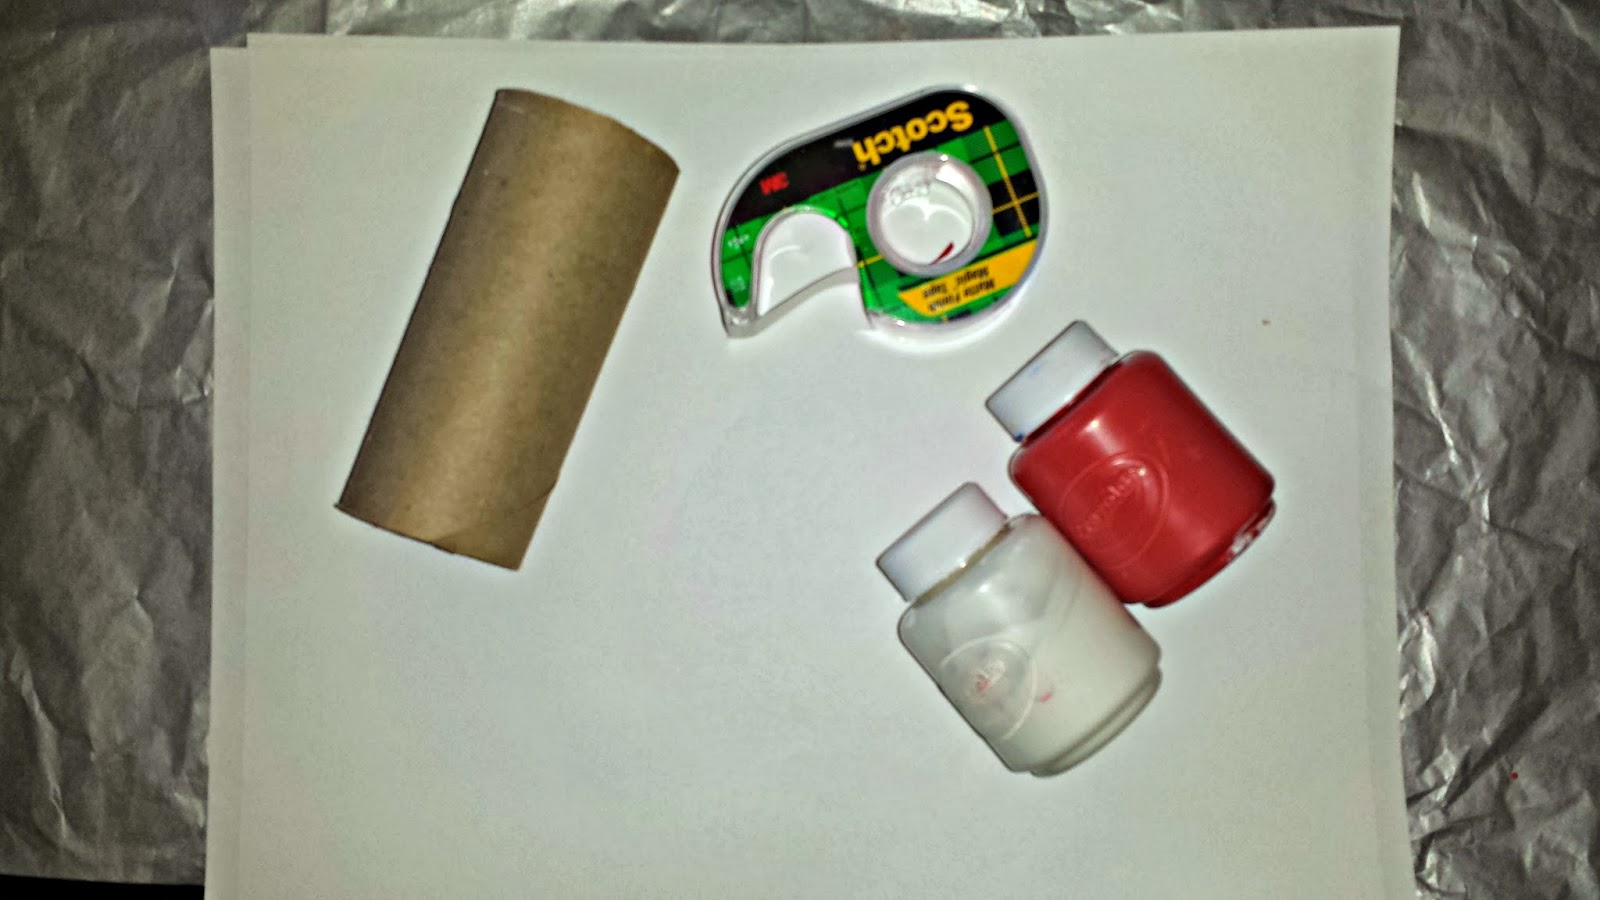 Diy heart stamp using toilet paper rolls kids valentines for Craft ideas using empty toilet paper rolls